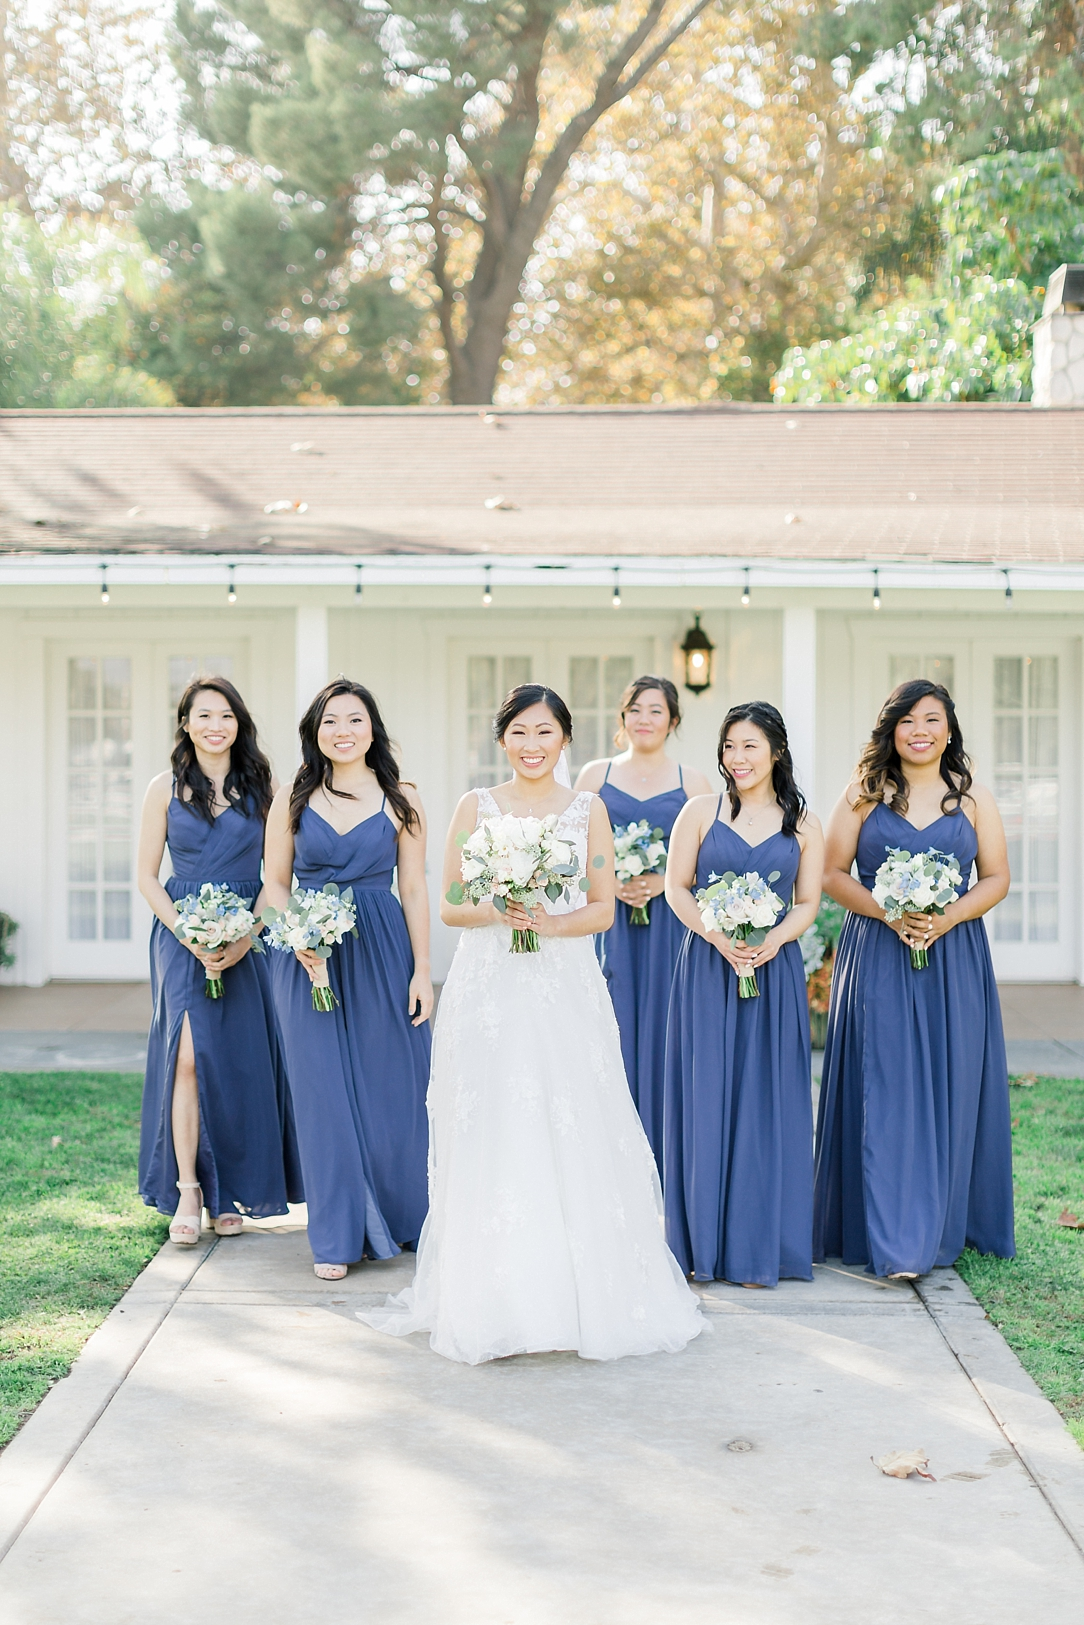 A Periwinkle Blue Inspired Wedding At Calamigos Equestrian In Burbank By Natural Light Photographer Madison Ellis. (38)